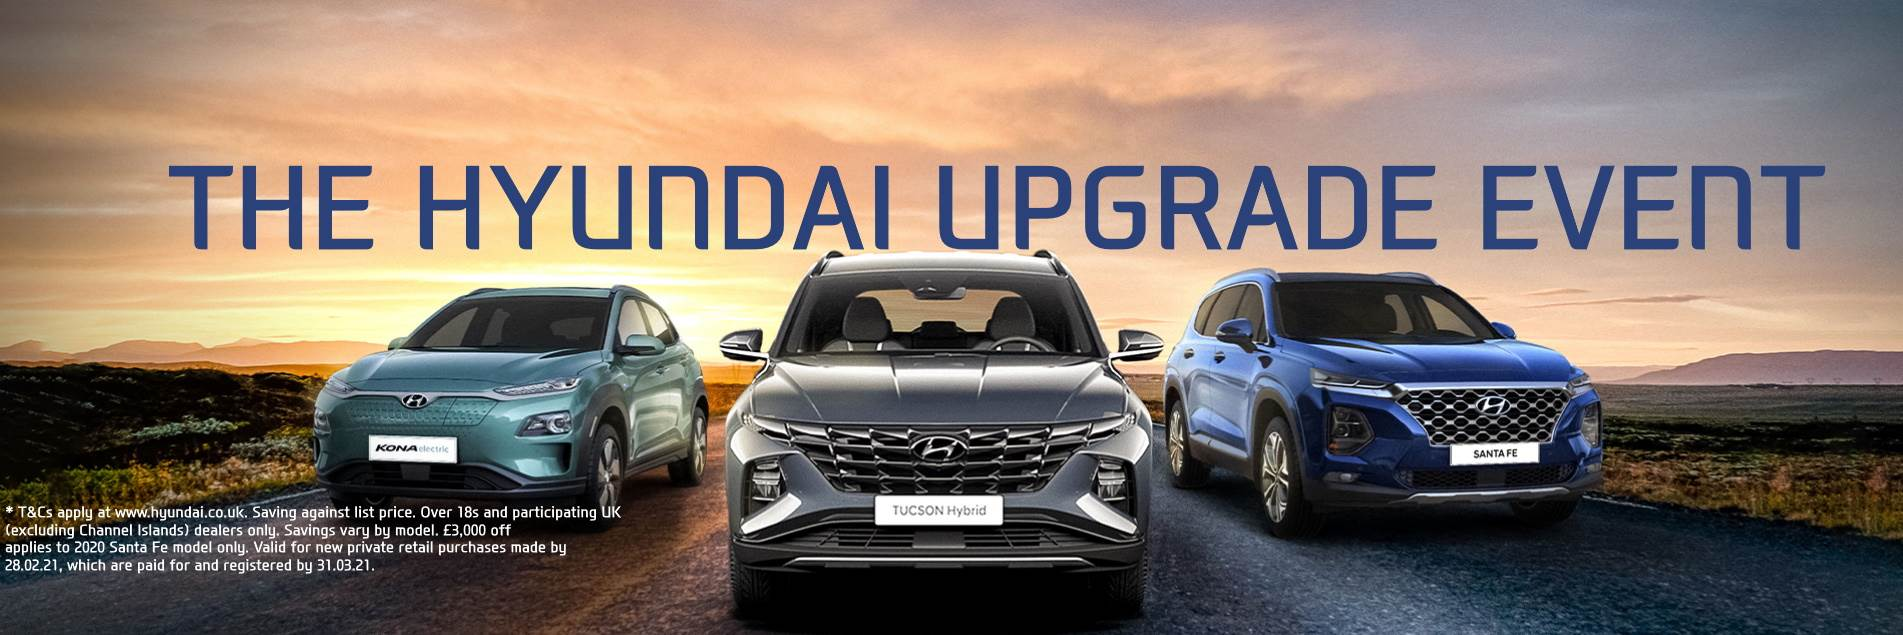 Hyundai Upgrade Event